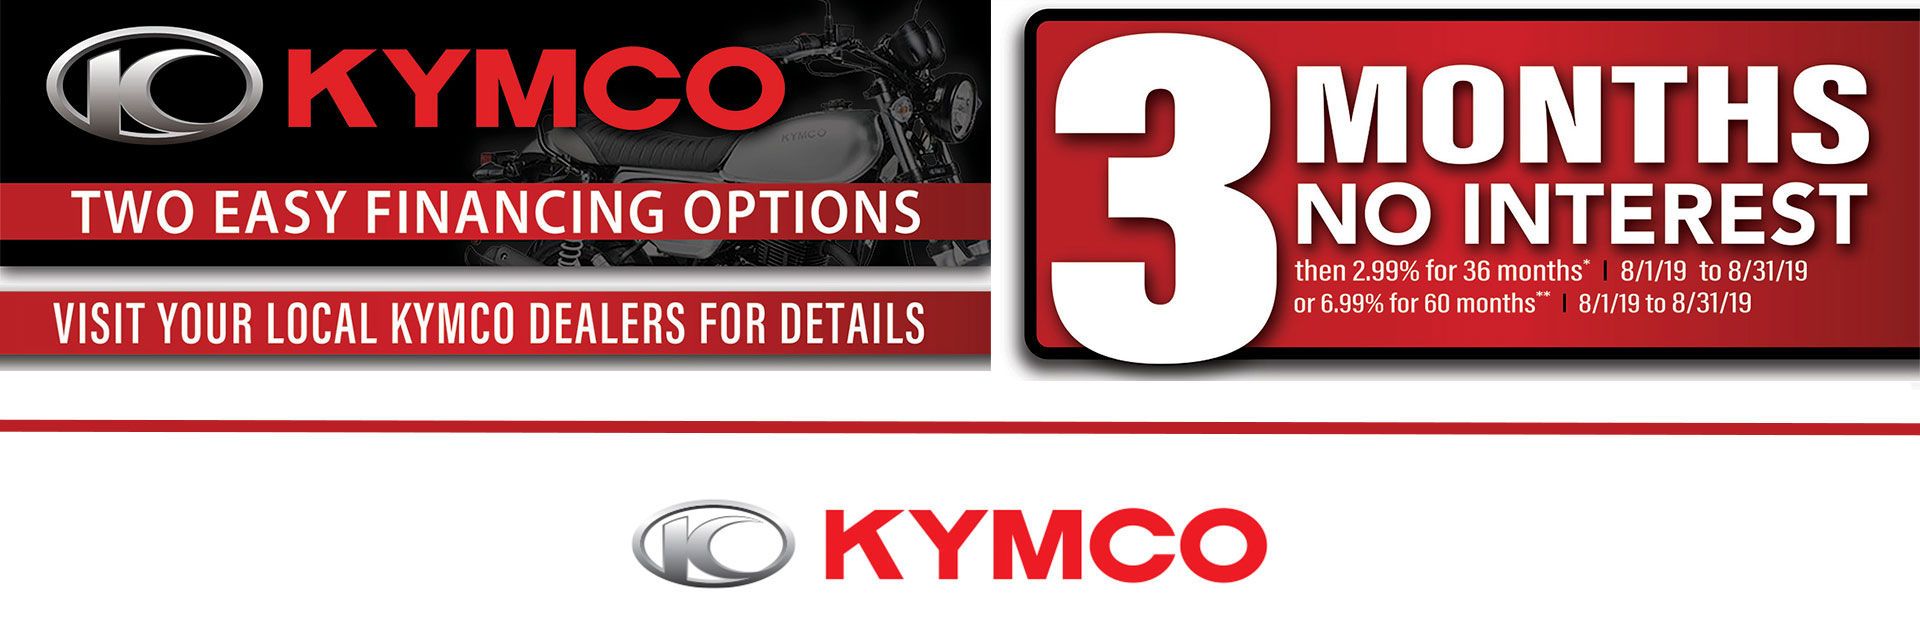 KYMCO: Two Easy Financing Options